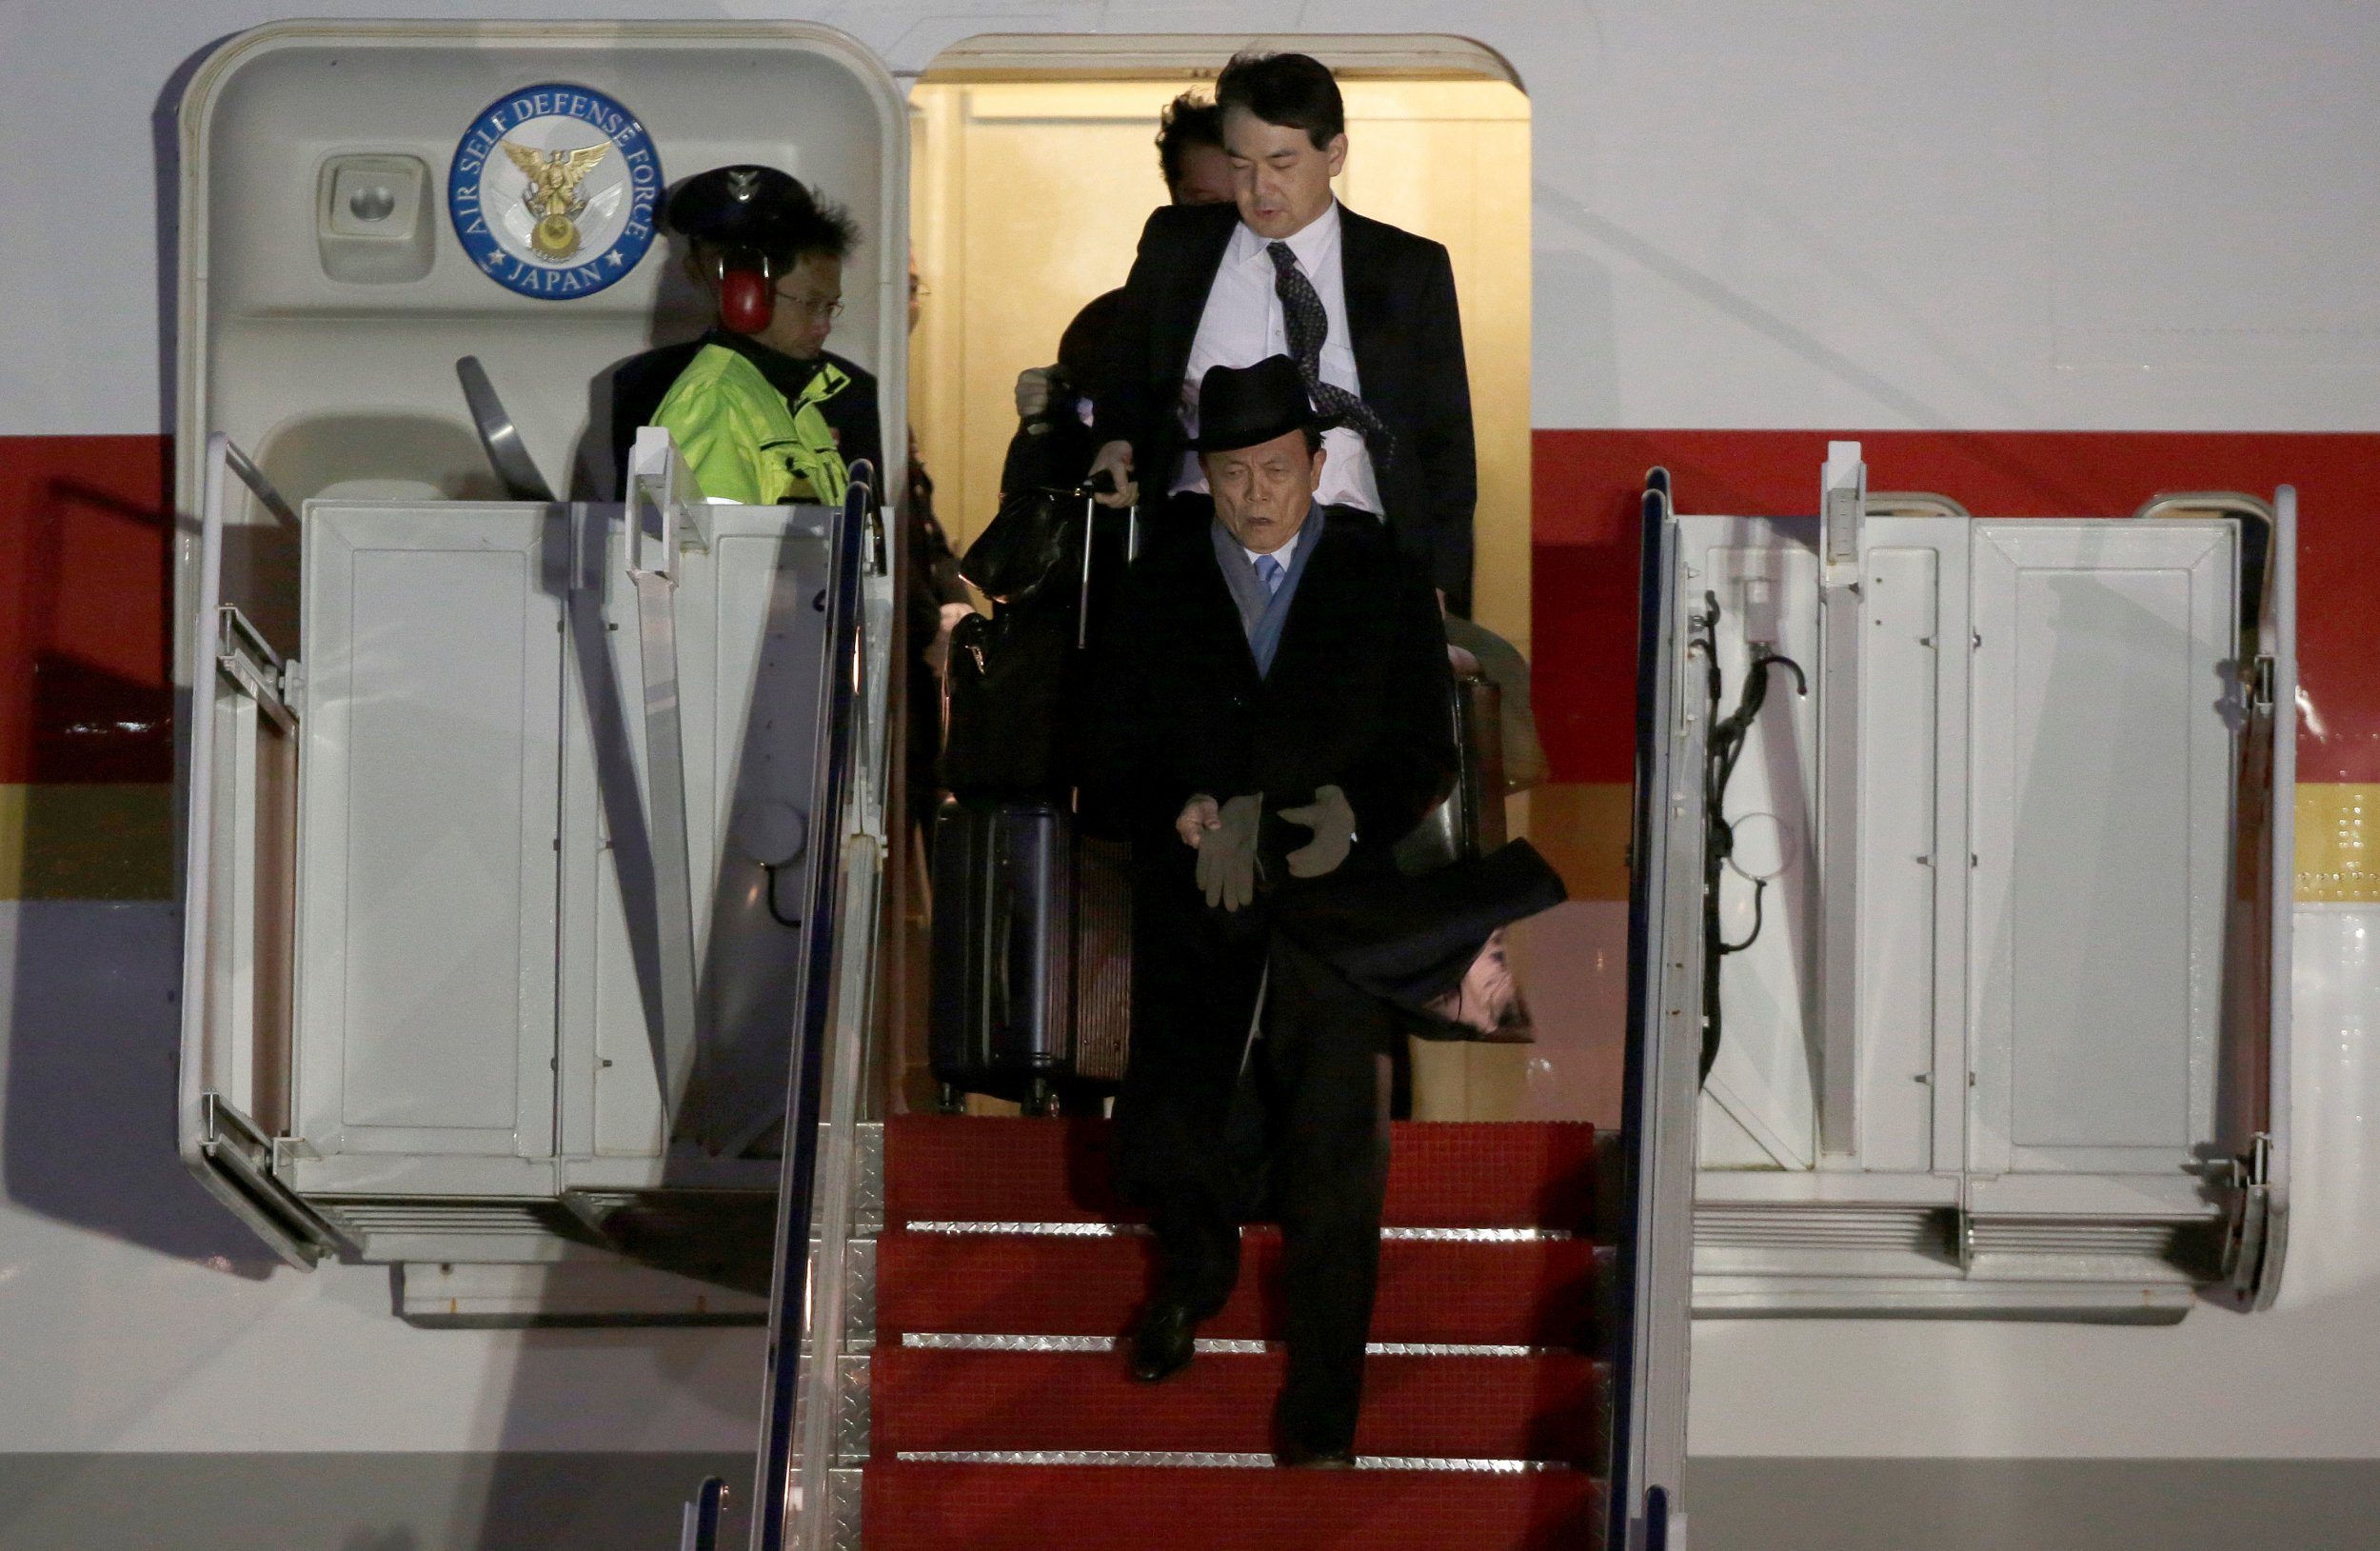 Abe leaves plane to meet Trump